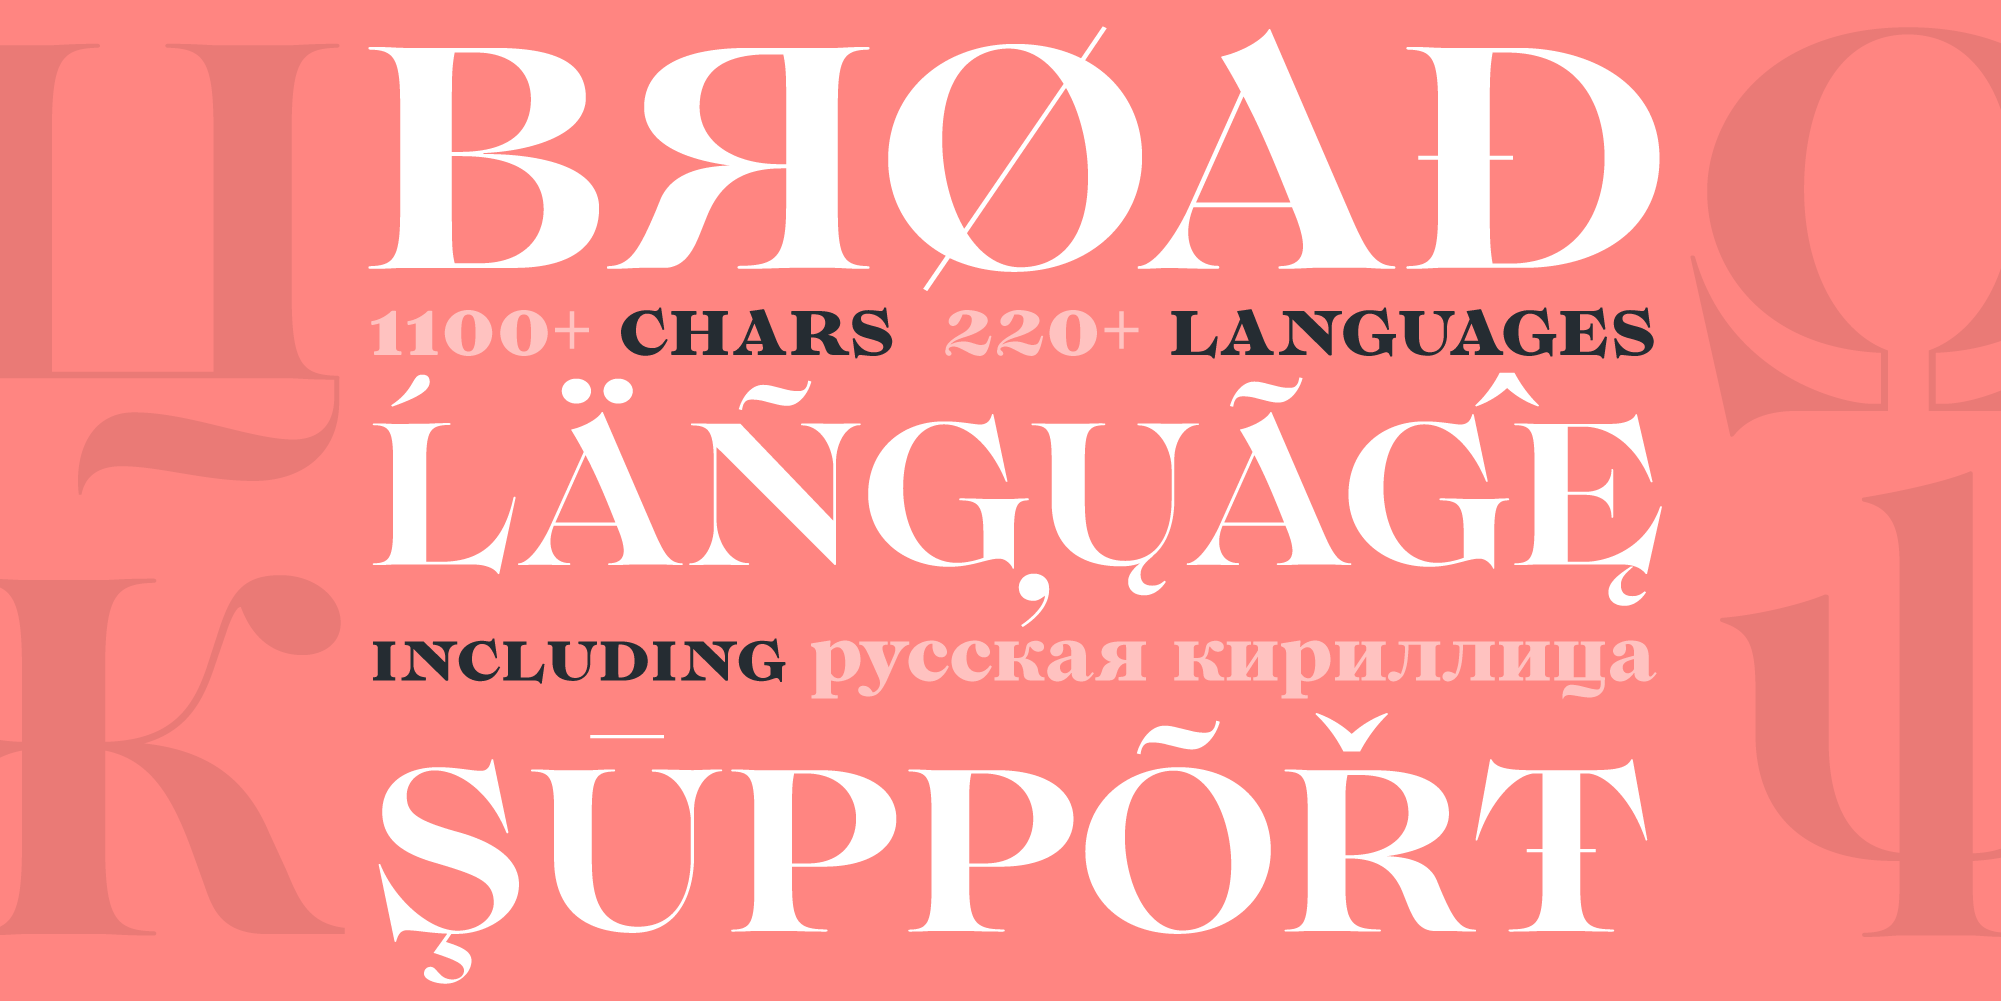 Lovelace languages